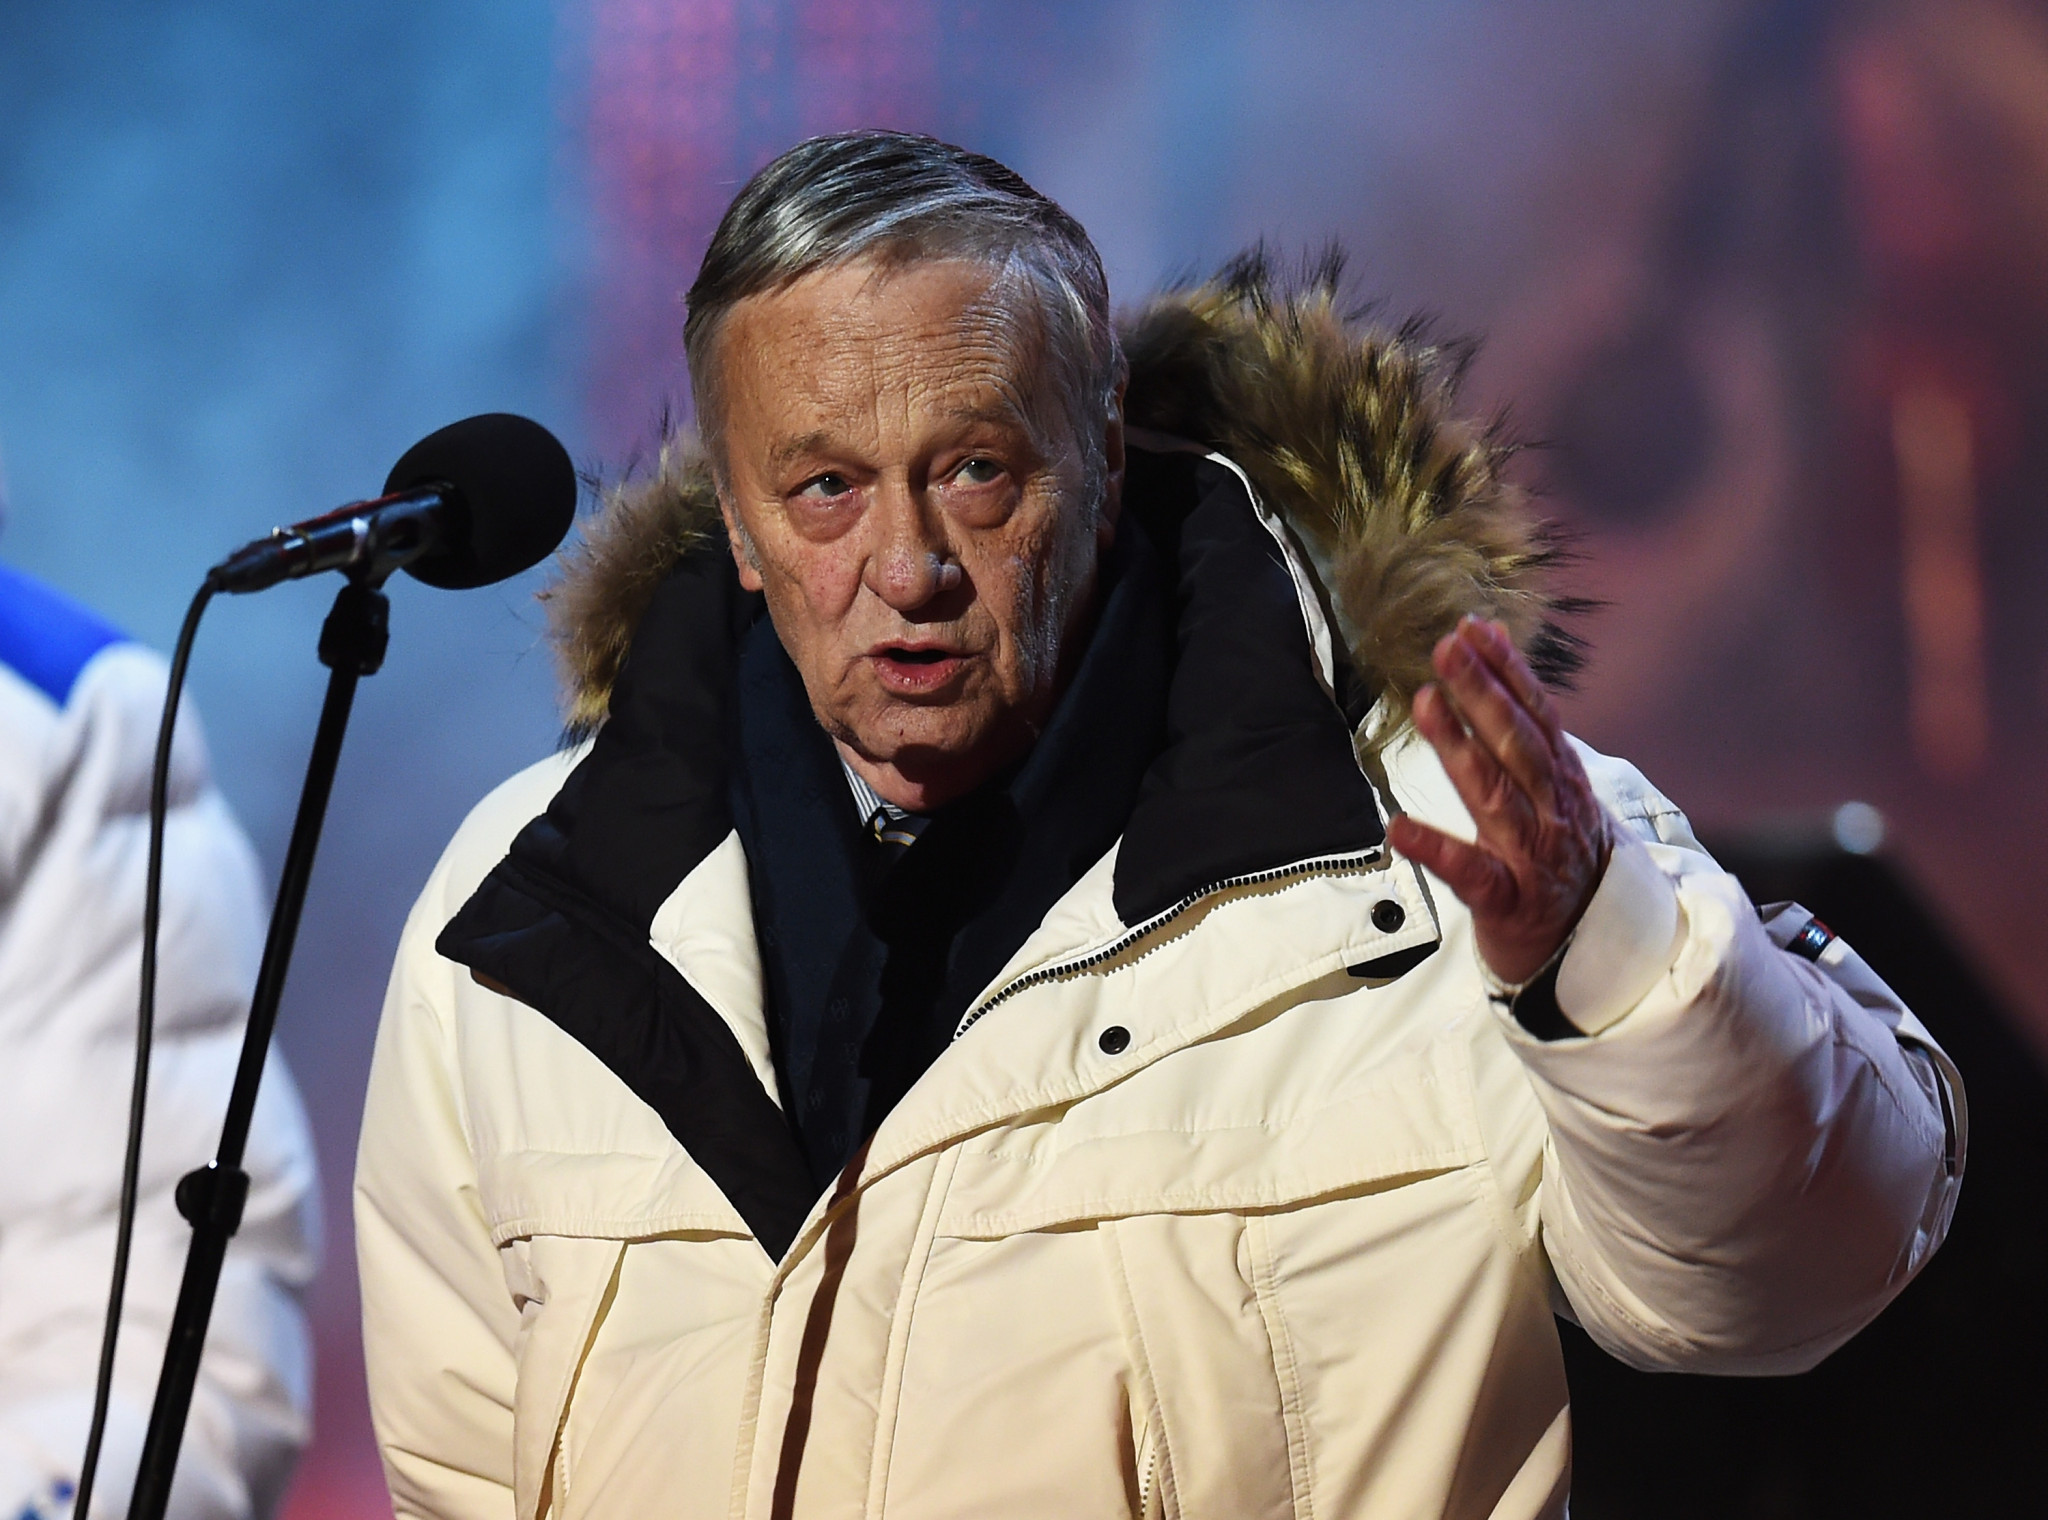 A successor to President Gian-Franco Kasper is to be elected at the FIS Congress in October ©Getty Images